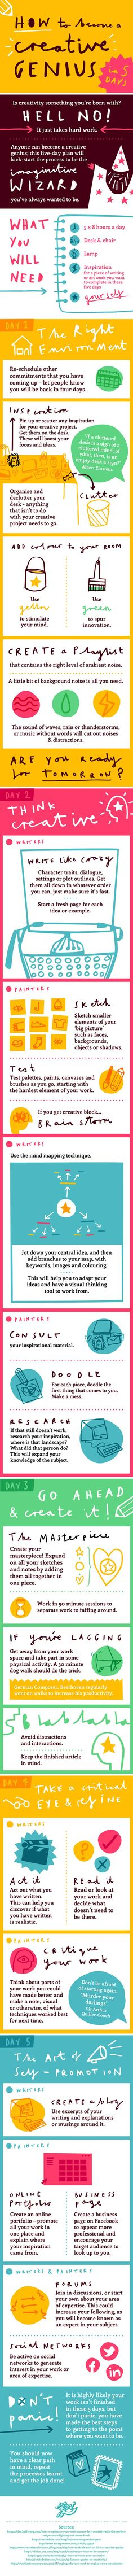 How To Become A Creative Genius In 5 Days #infographic #HowTo #Innovation